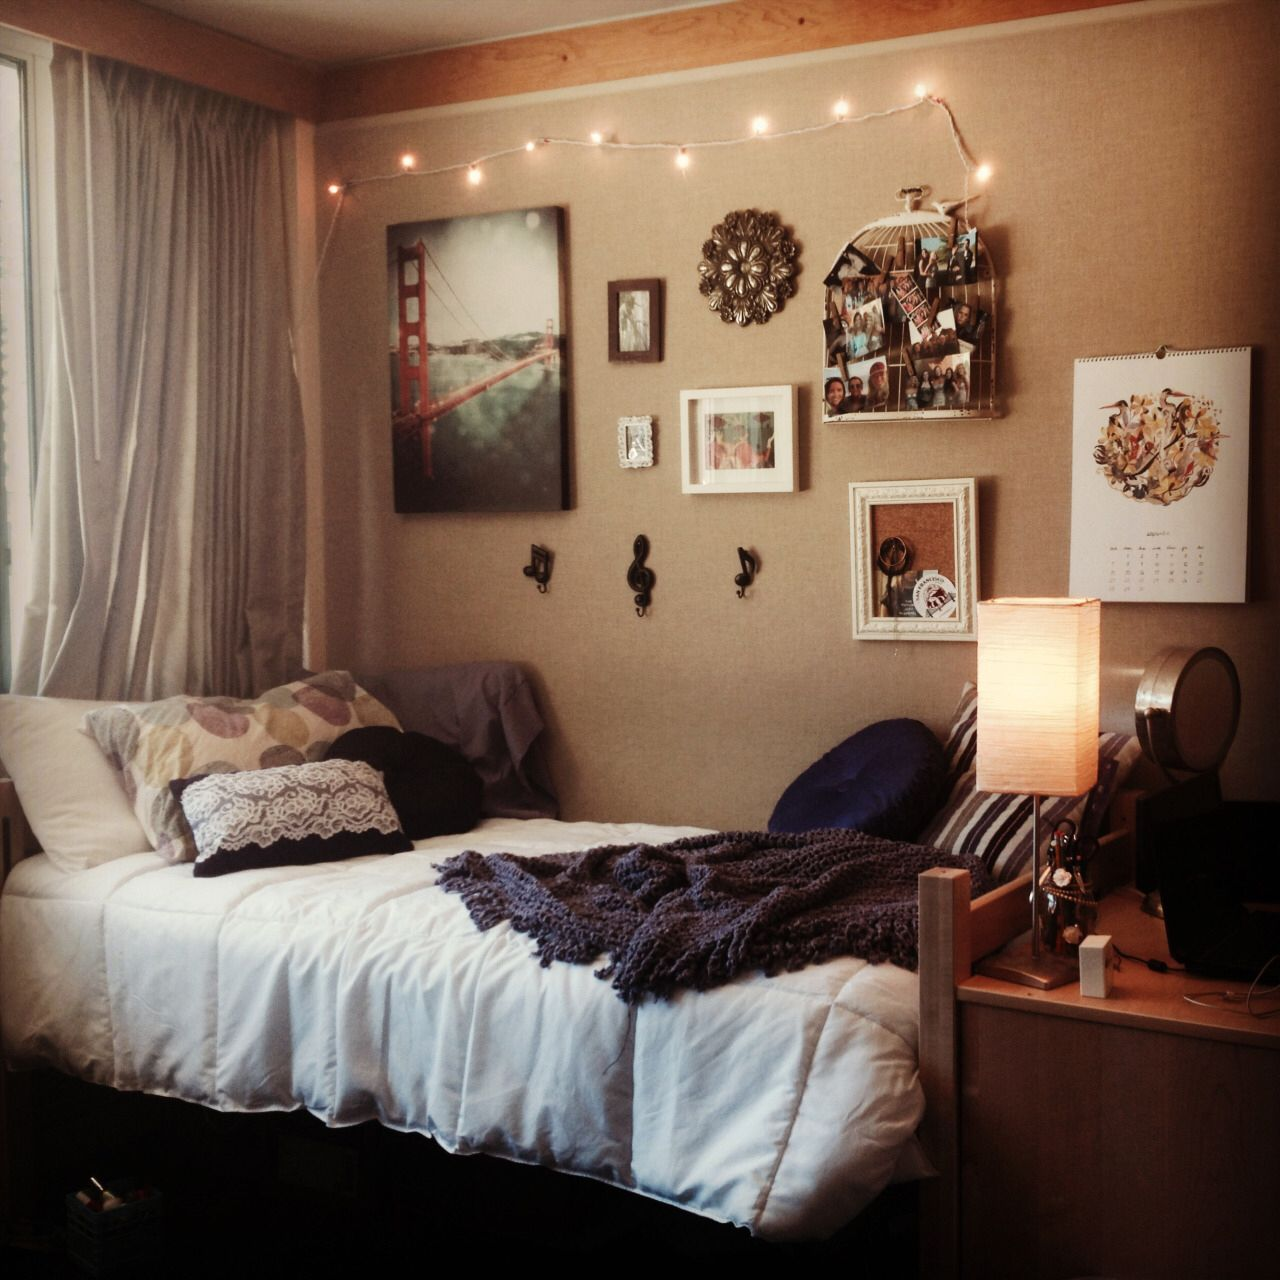 university rooms decoration college at dorm baylor pin decor wall